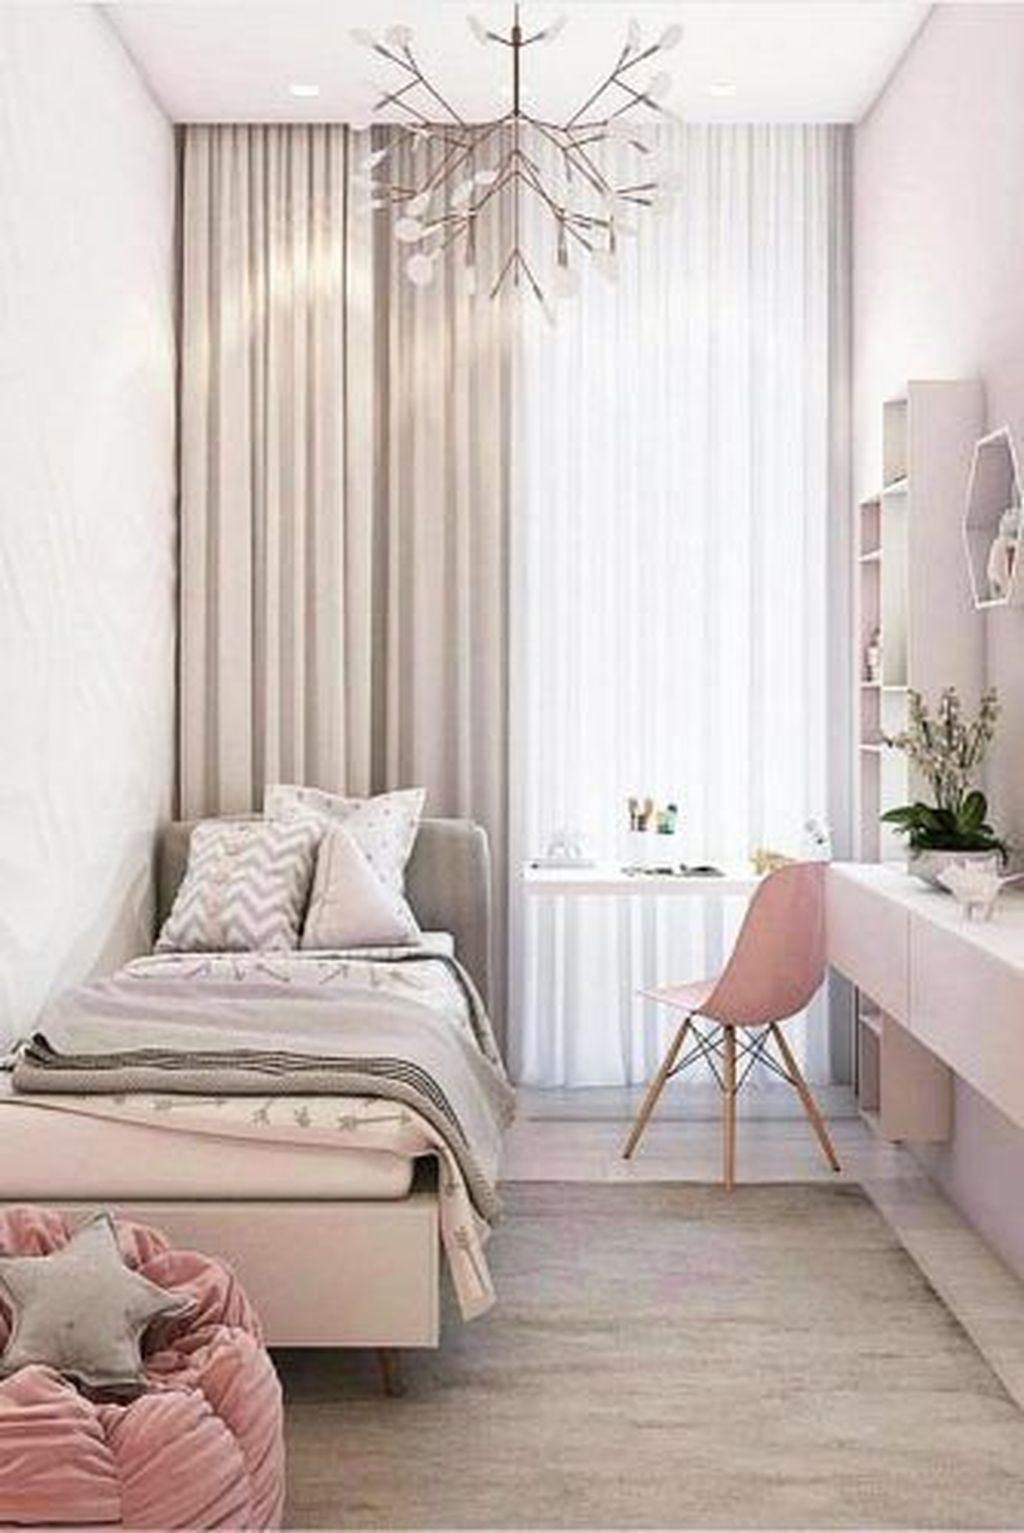 Awesome 57 Modern Small Bedroom Design Ideas For Home More At